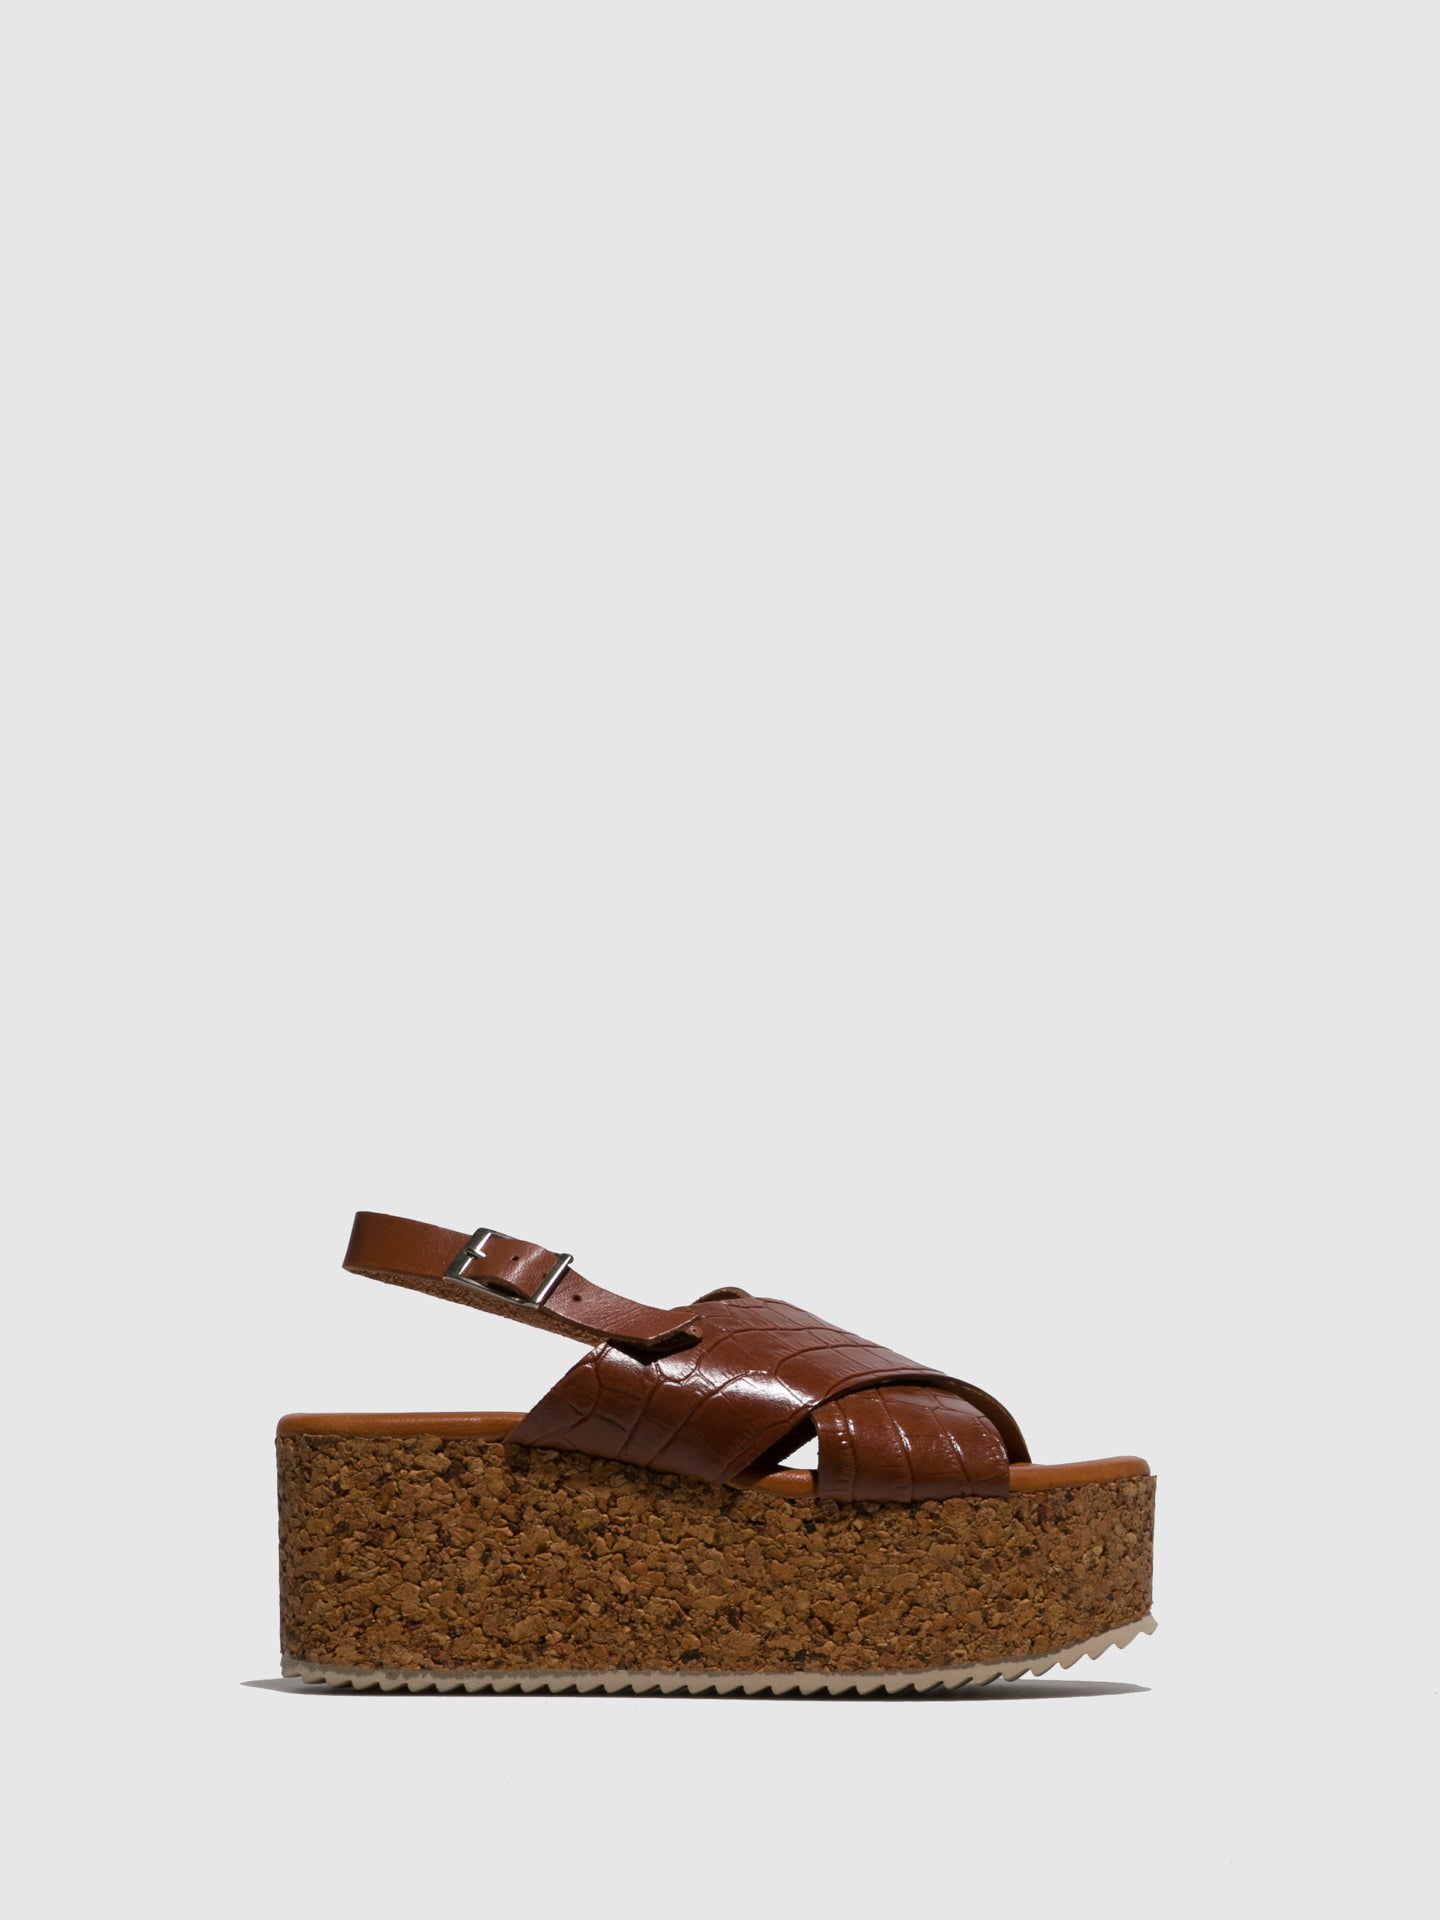 Marila Shoes Brown Leather Platform Sandals